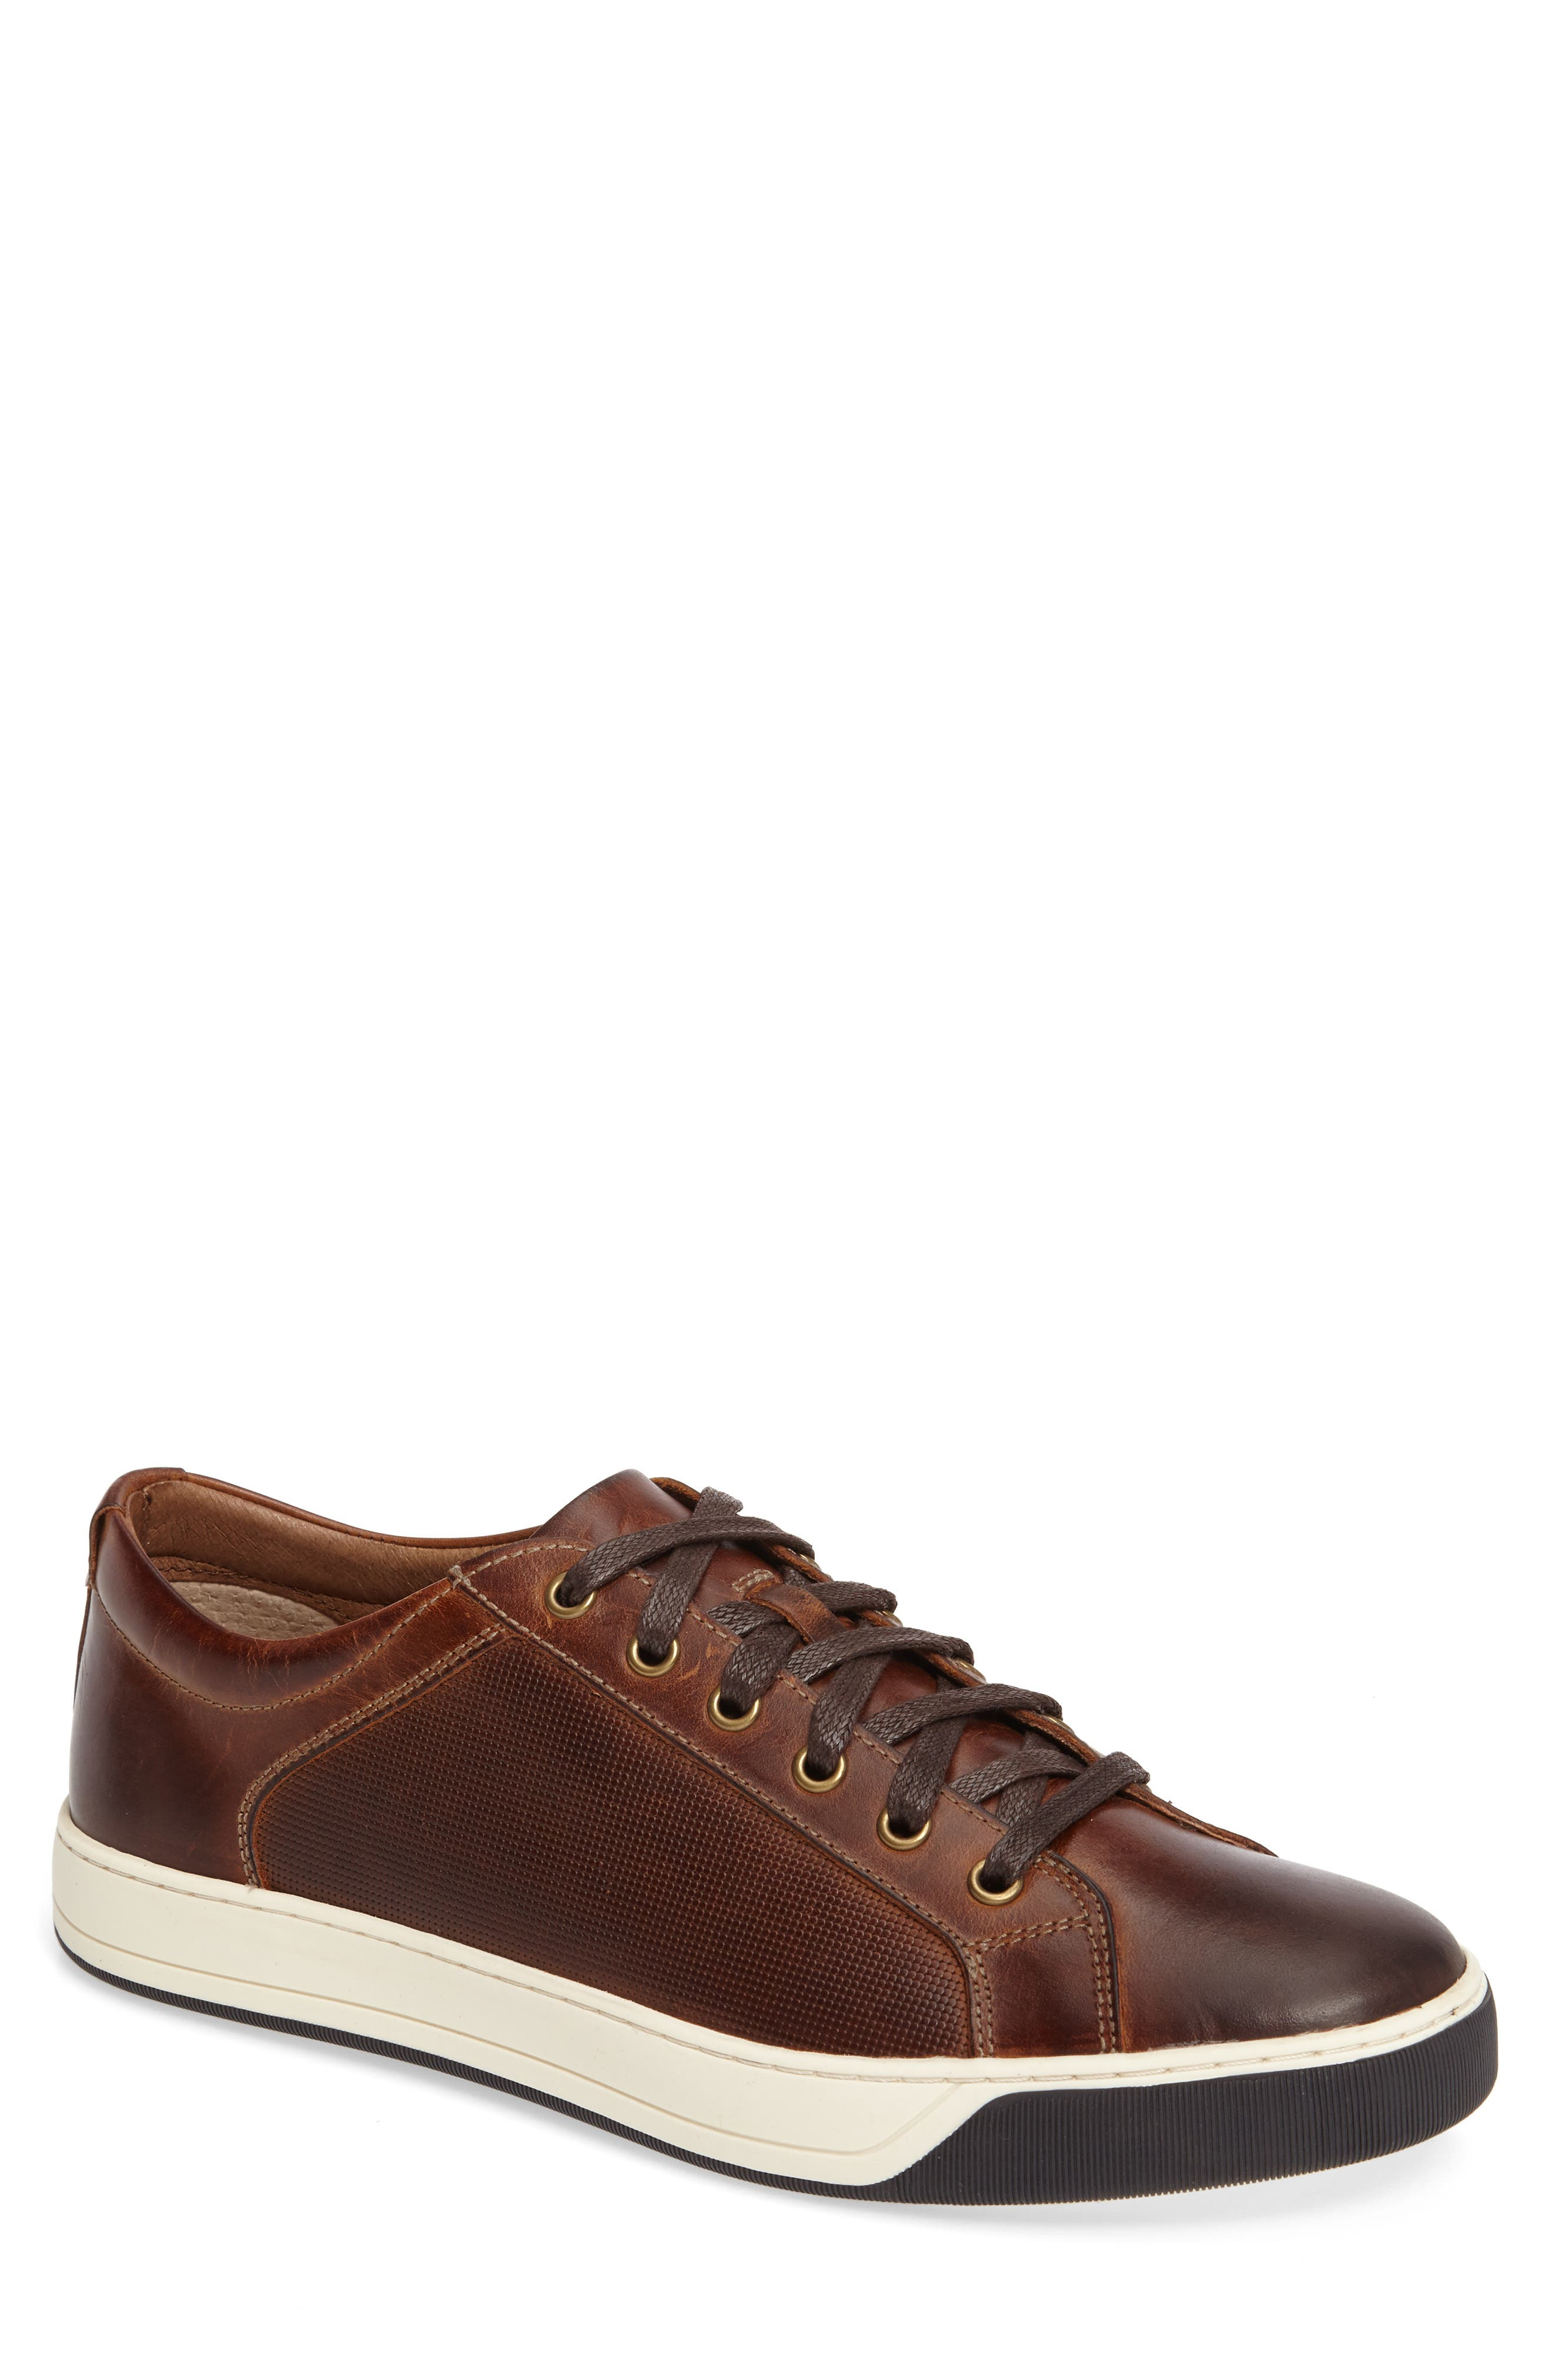 Allister Sneaker,                             Main thumbnail 1, color,                             BROWN LEATHER